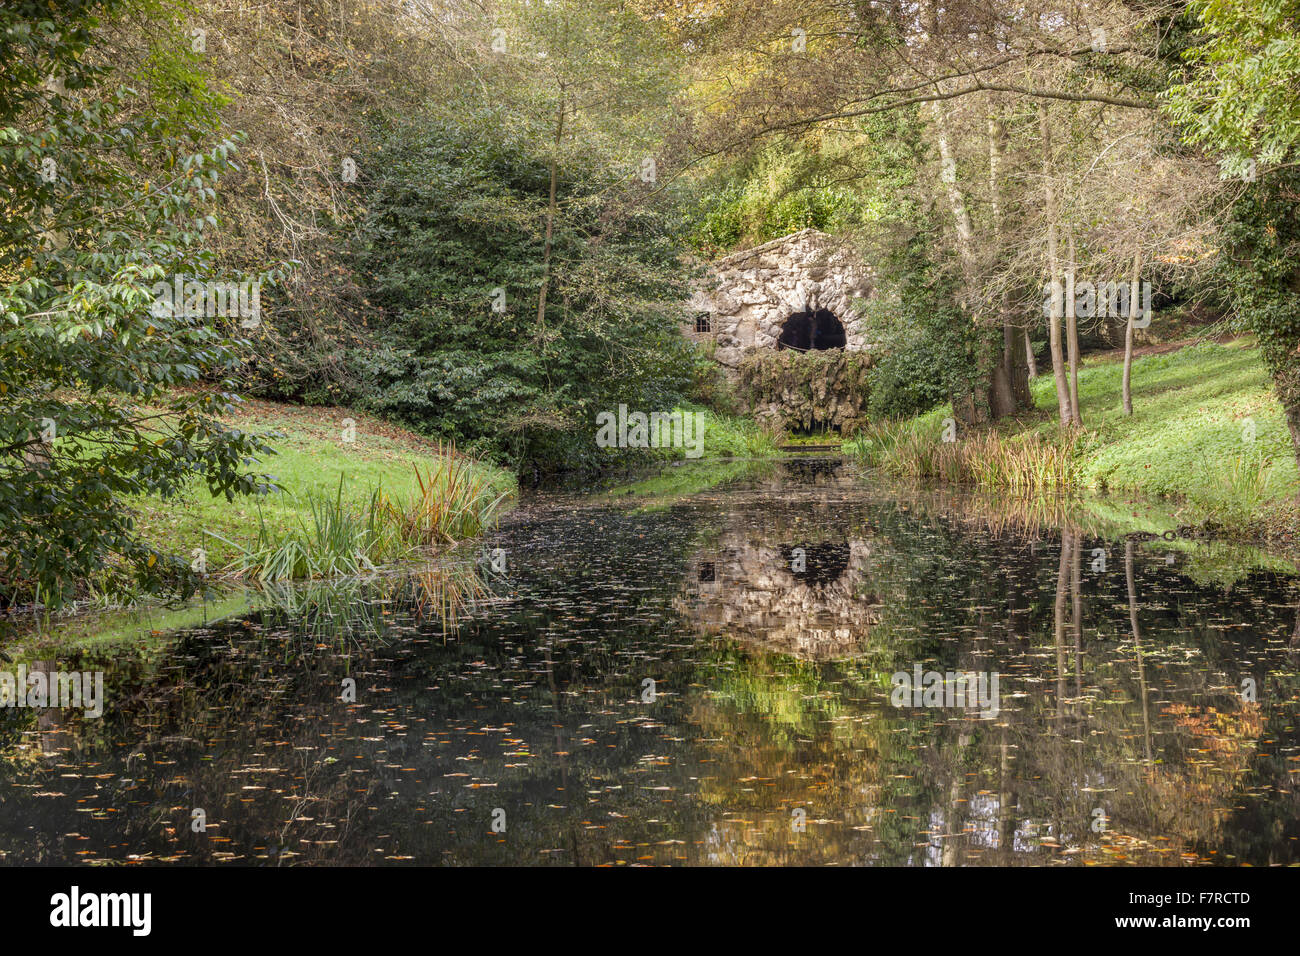 The Grotto at Stowe, Buckinghamshire. Stowe is an 18th century landscaped garden, and includes more than 40 historic - Stock Image